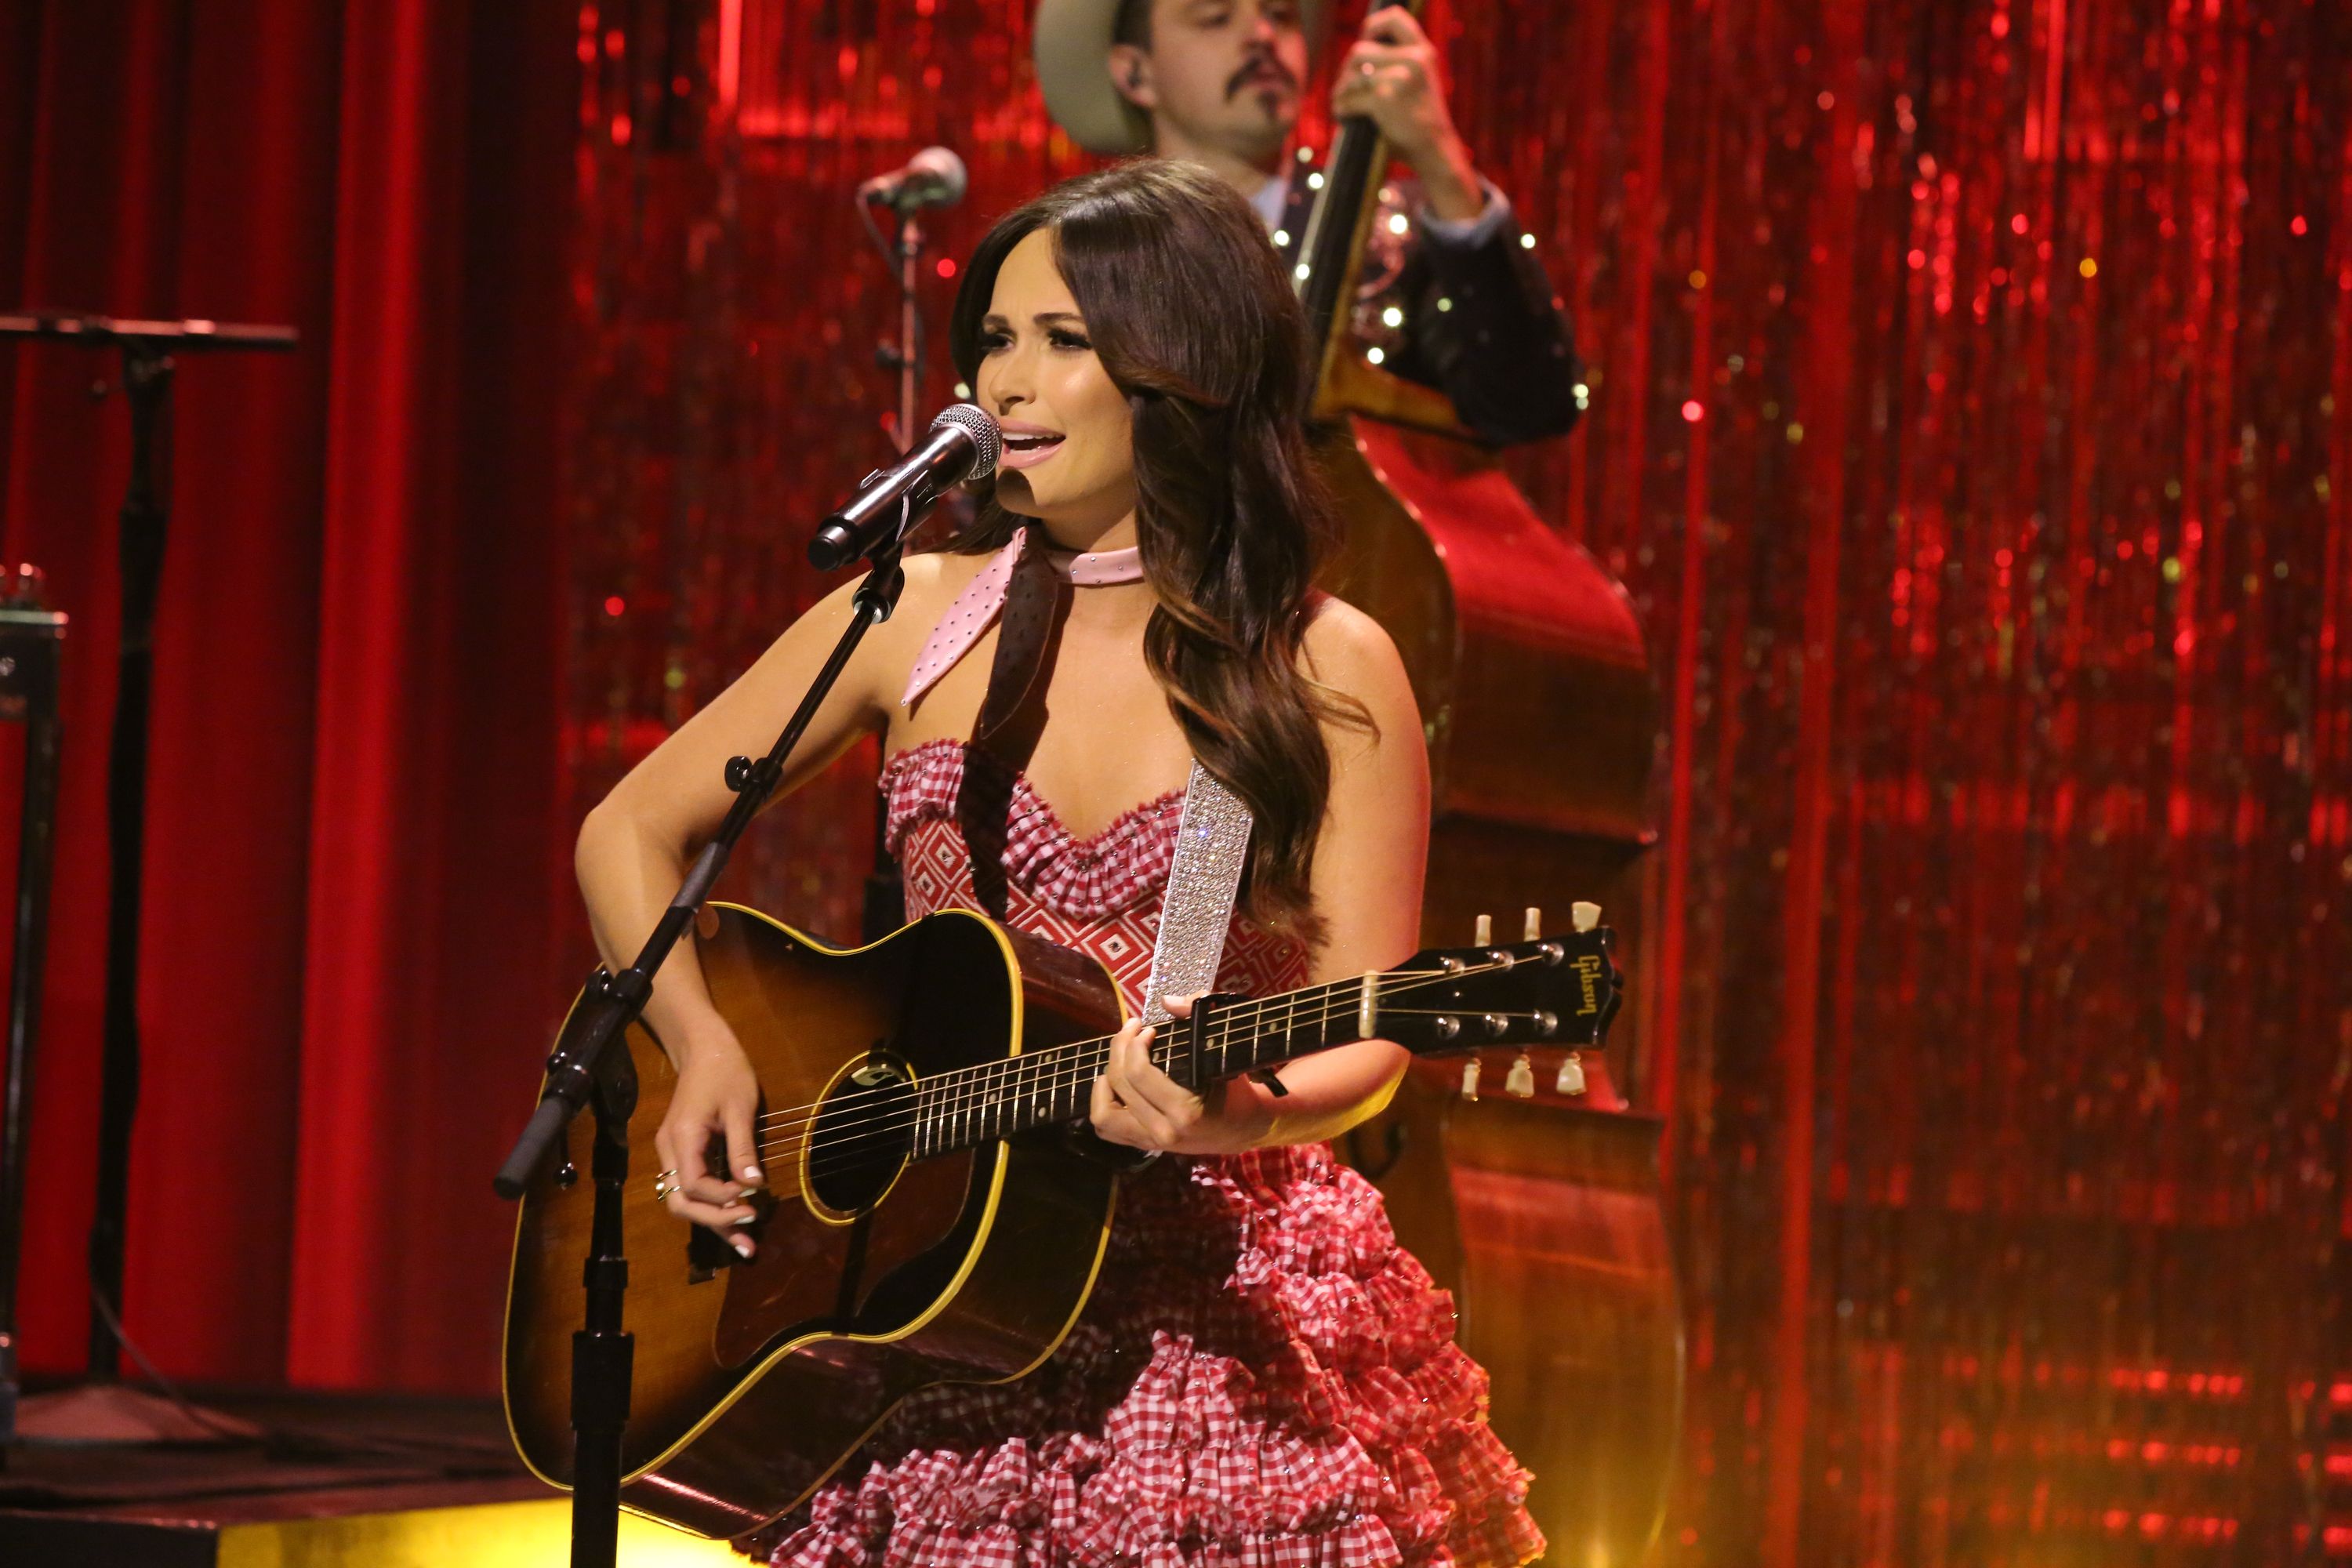 THE TONIGHT SHOW STARRING JIMMY FALLON -- Episode 0276 -- Pictured: Musical guest Kacey Musgraves performs on June 9, 2015 -- (Photo by: Douglas Gorenstein/NBC/NBCU Photo Bank via Getty Images)